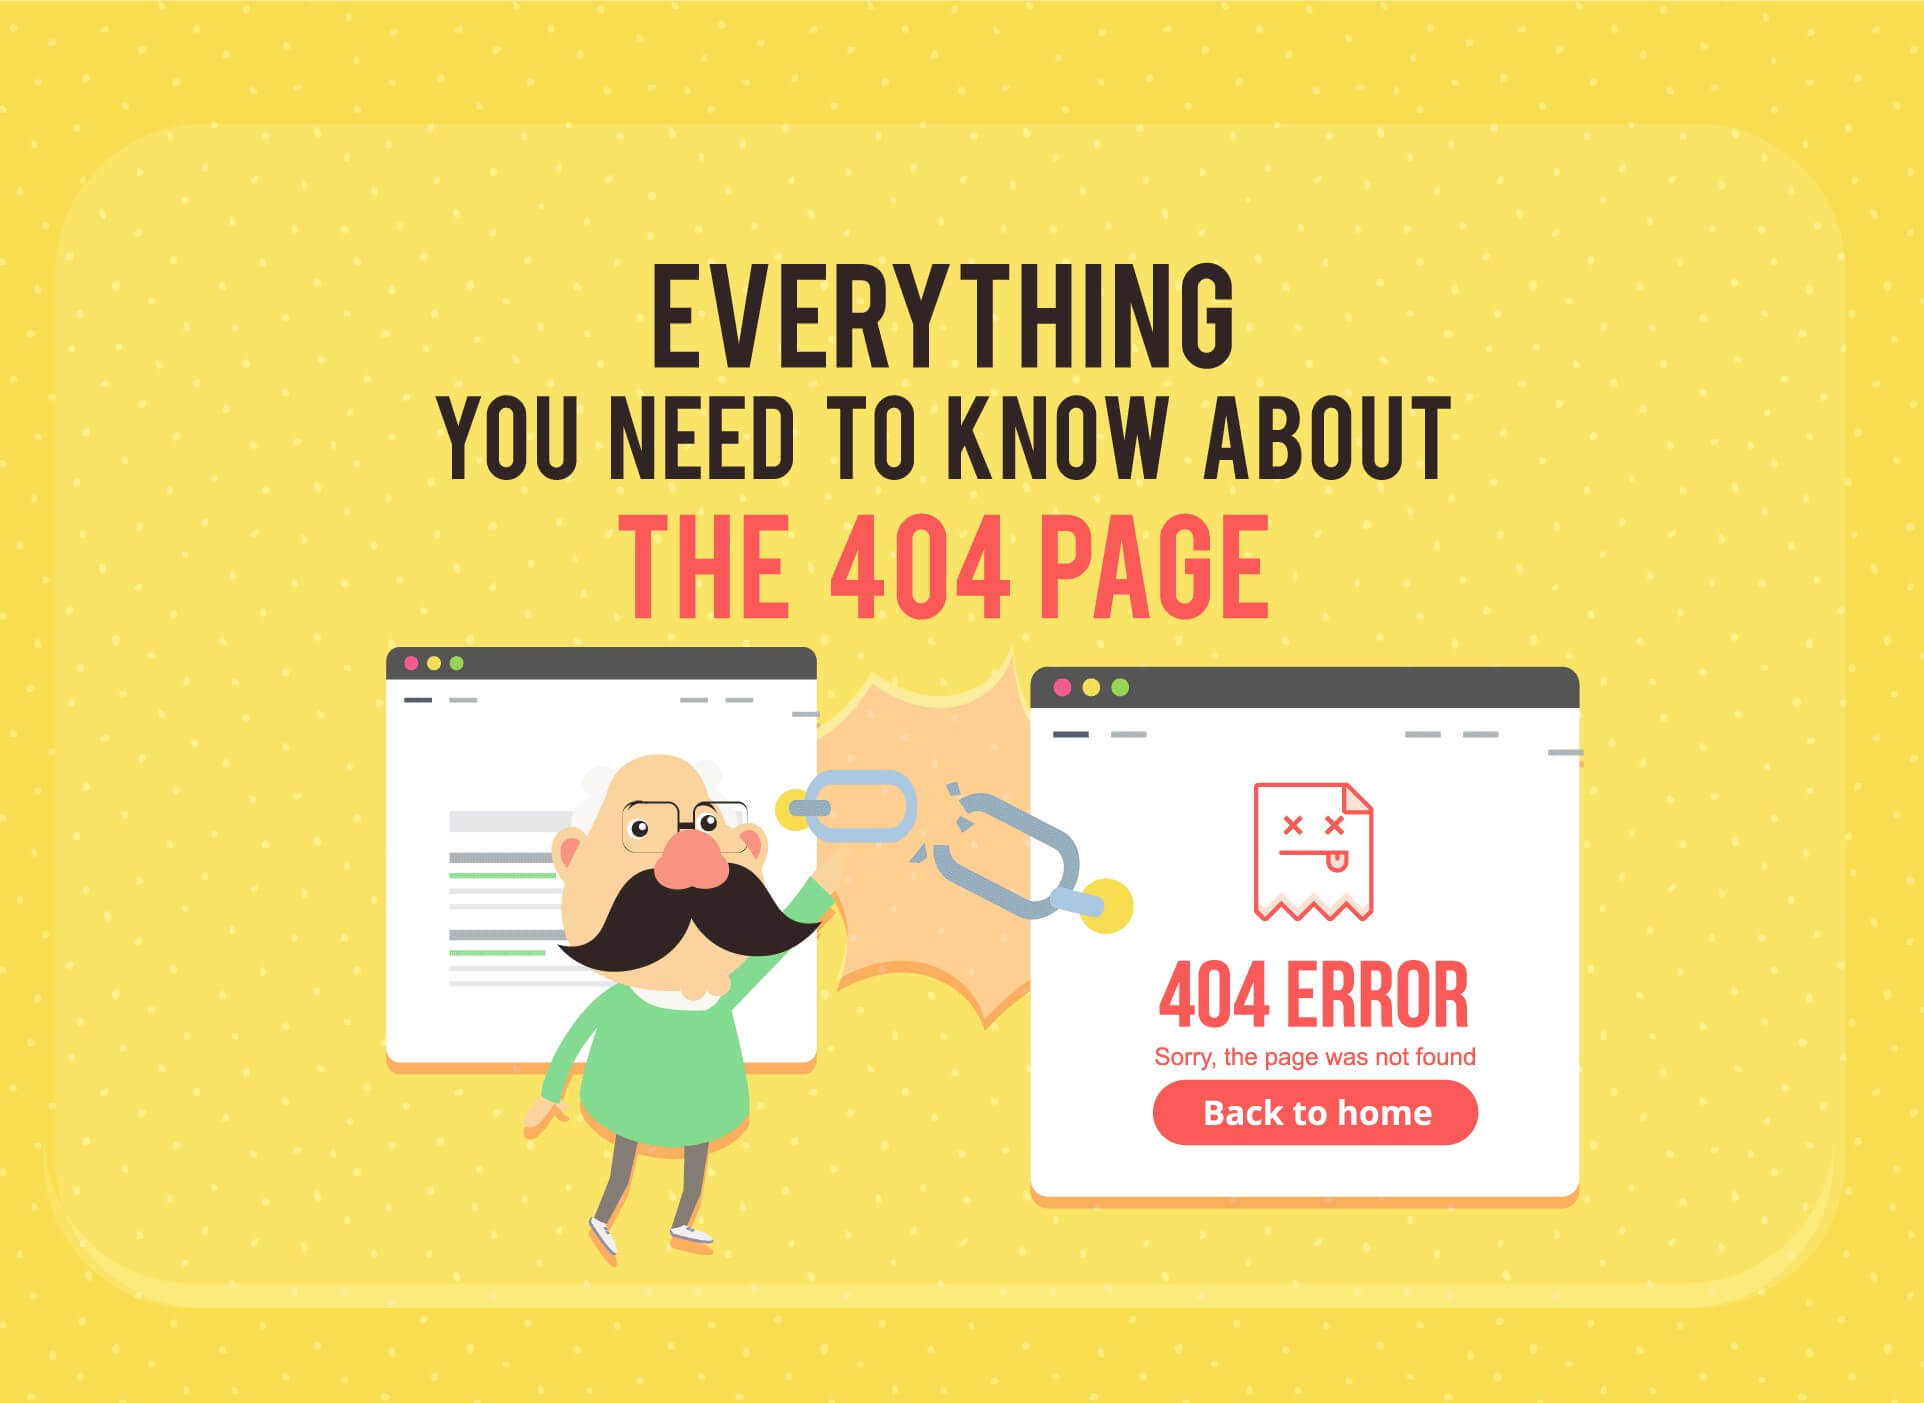 Header image for the infographic about the 404 error page